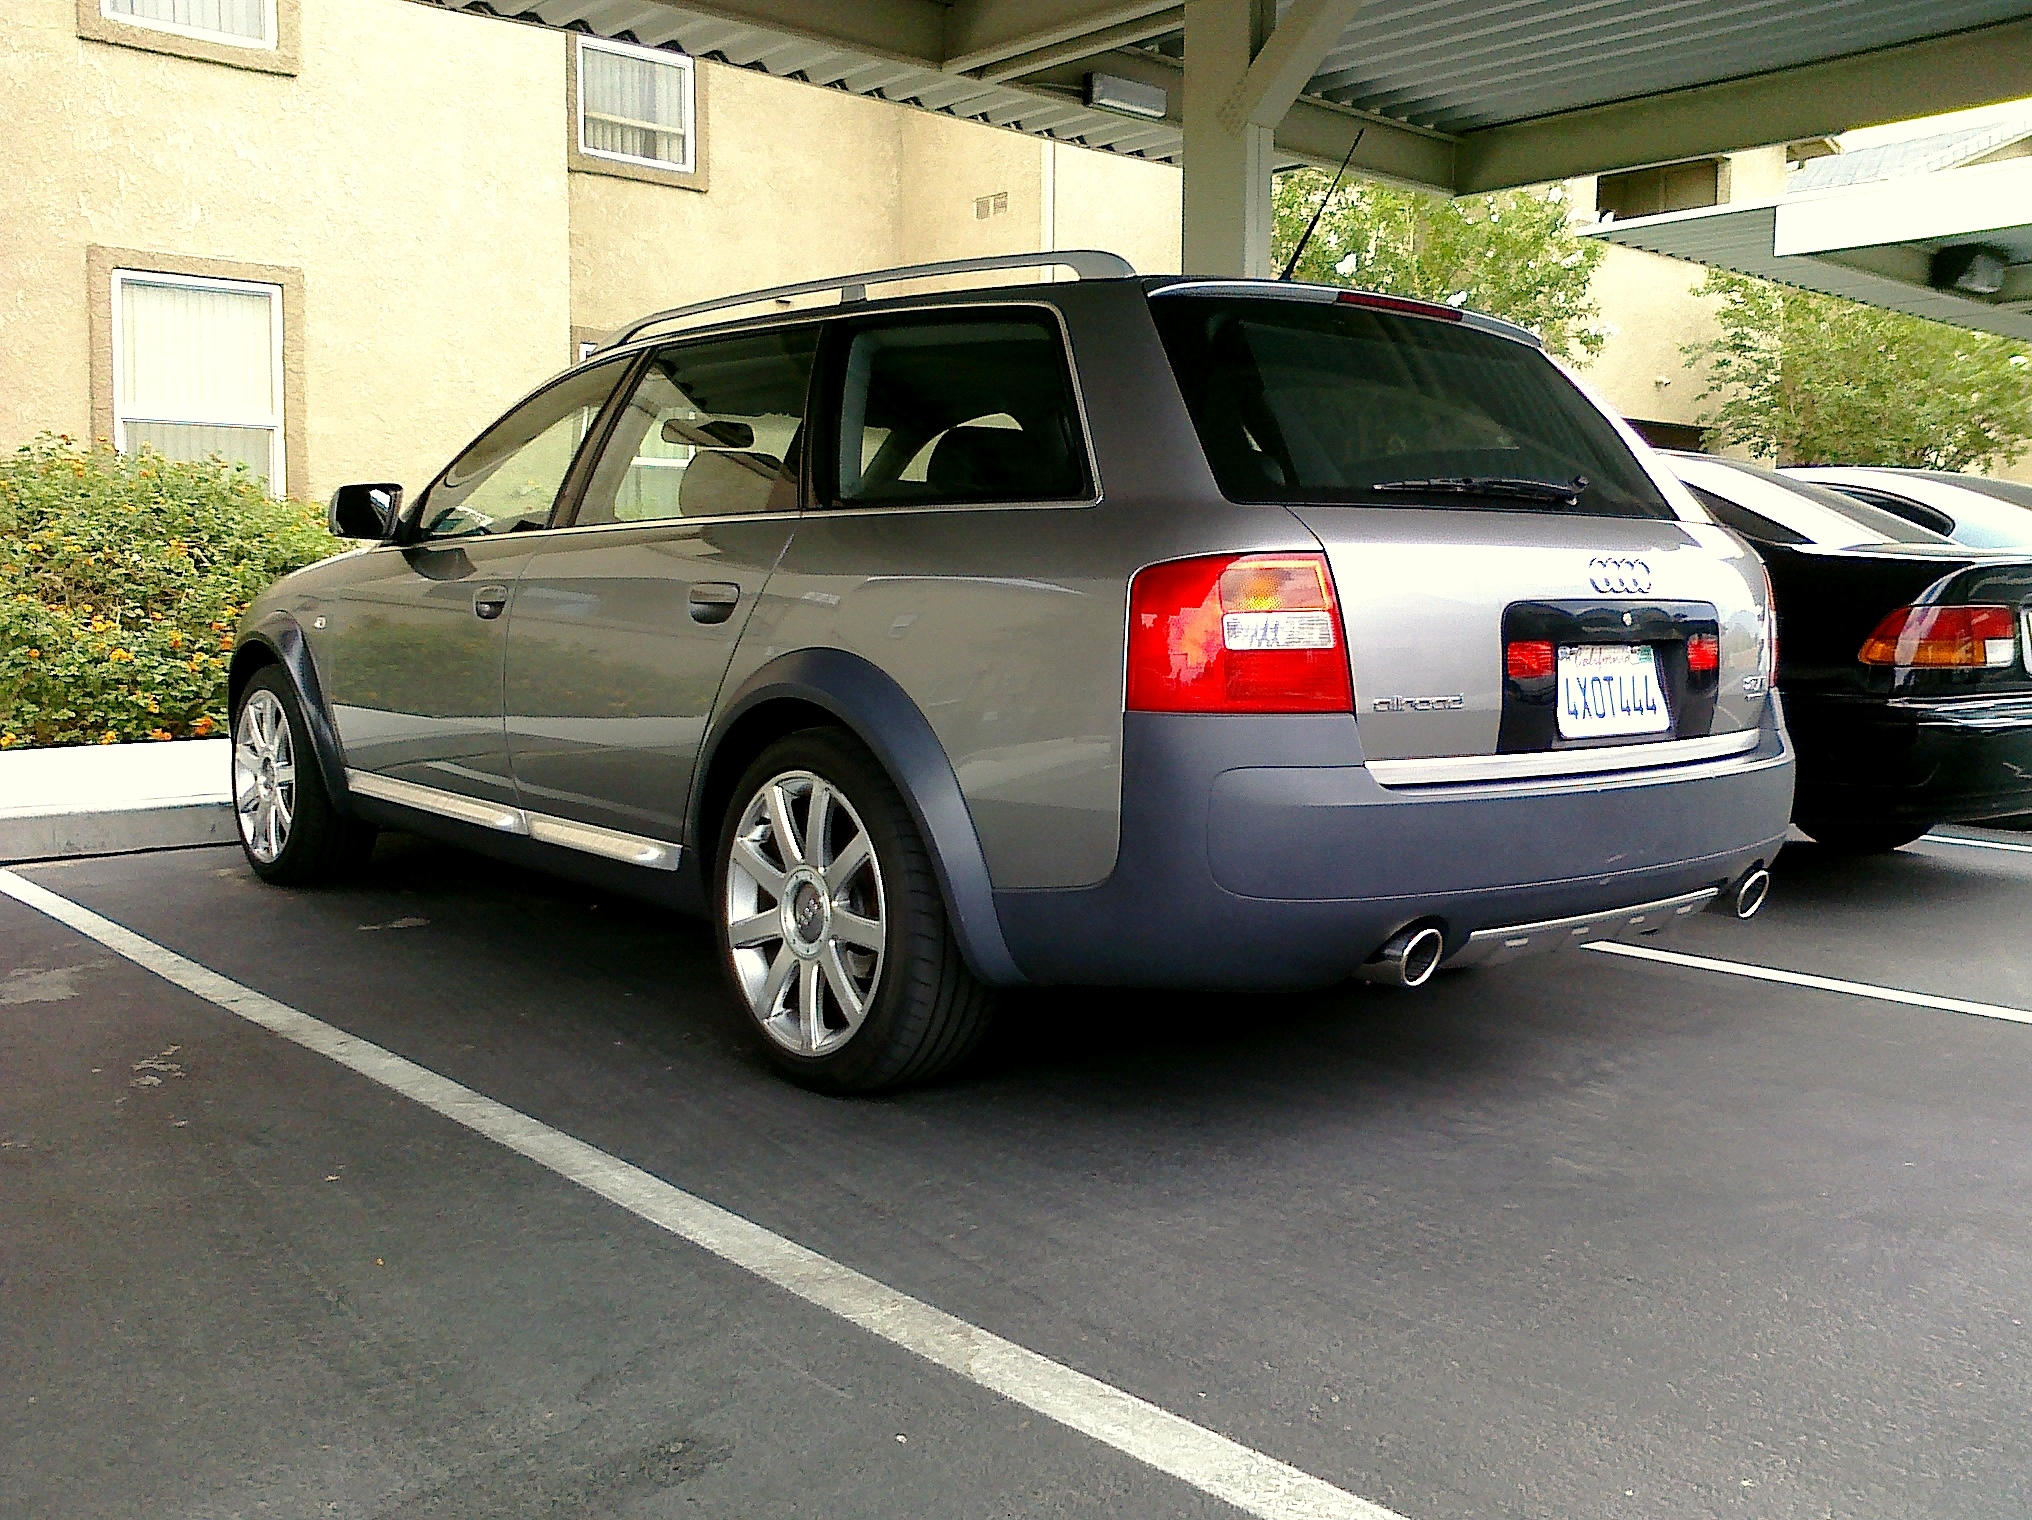 Dilberto 2002 audi allroad2 7t wagon 4d specs photos for 2002 audi a6 window problems